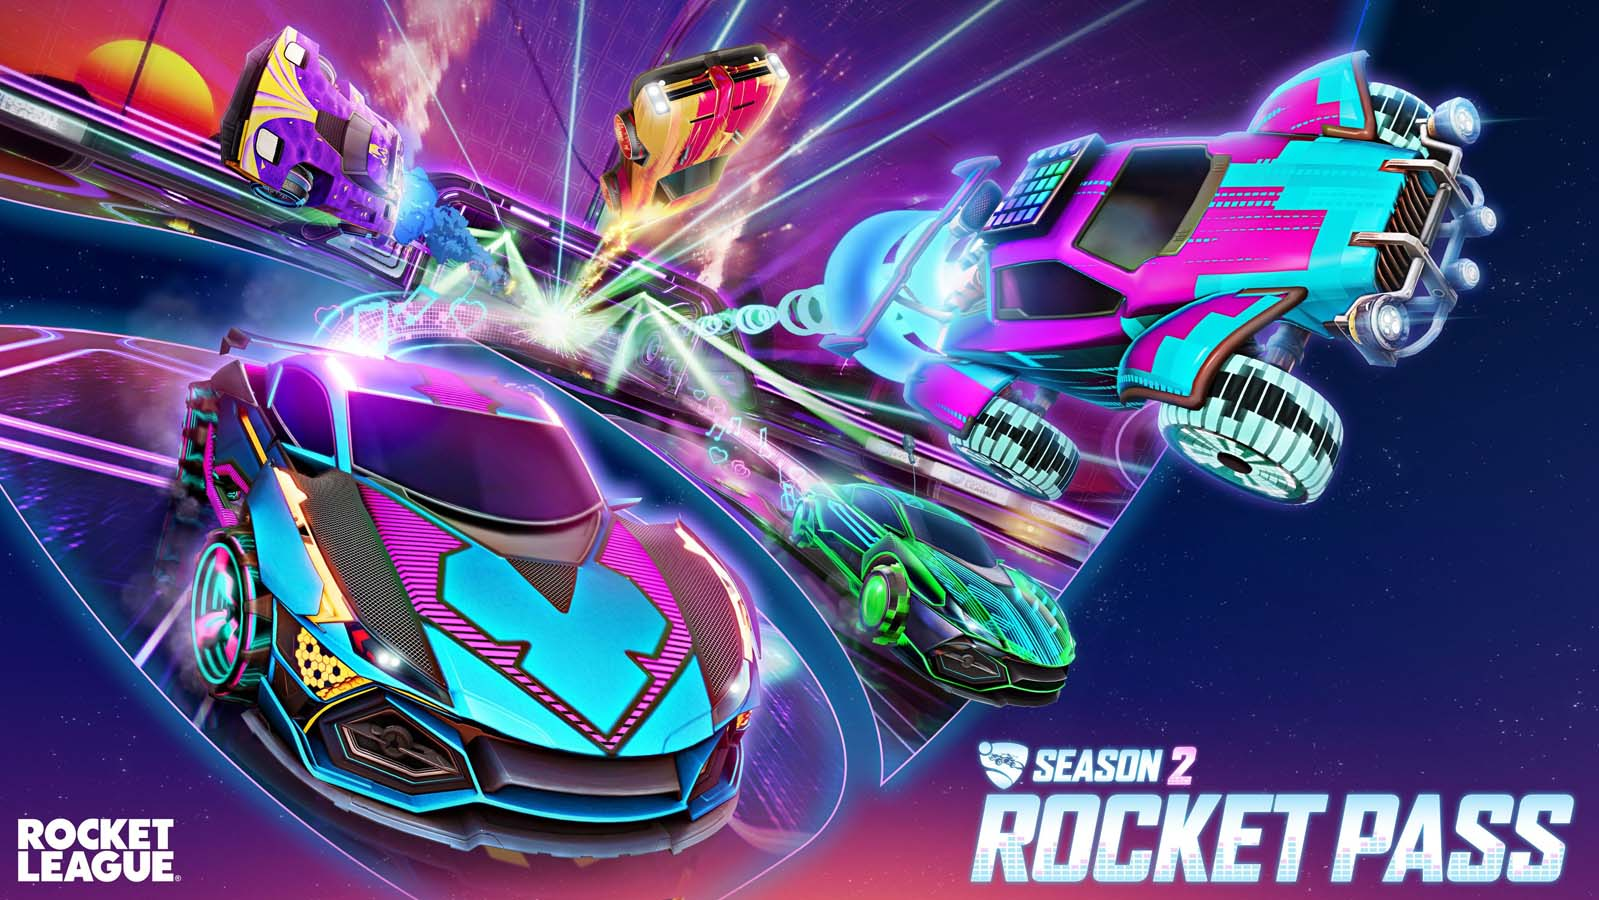 Rocket League's Season 2 will go live on December 9. The next season is a celebration of music!